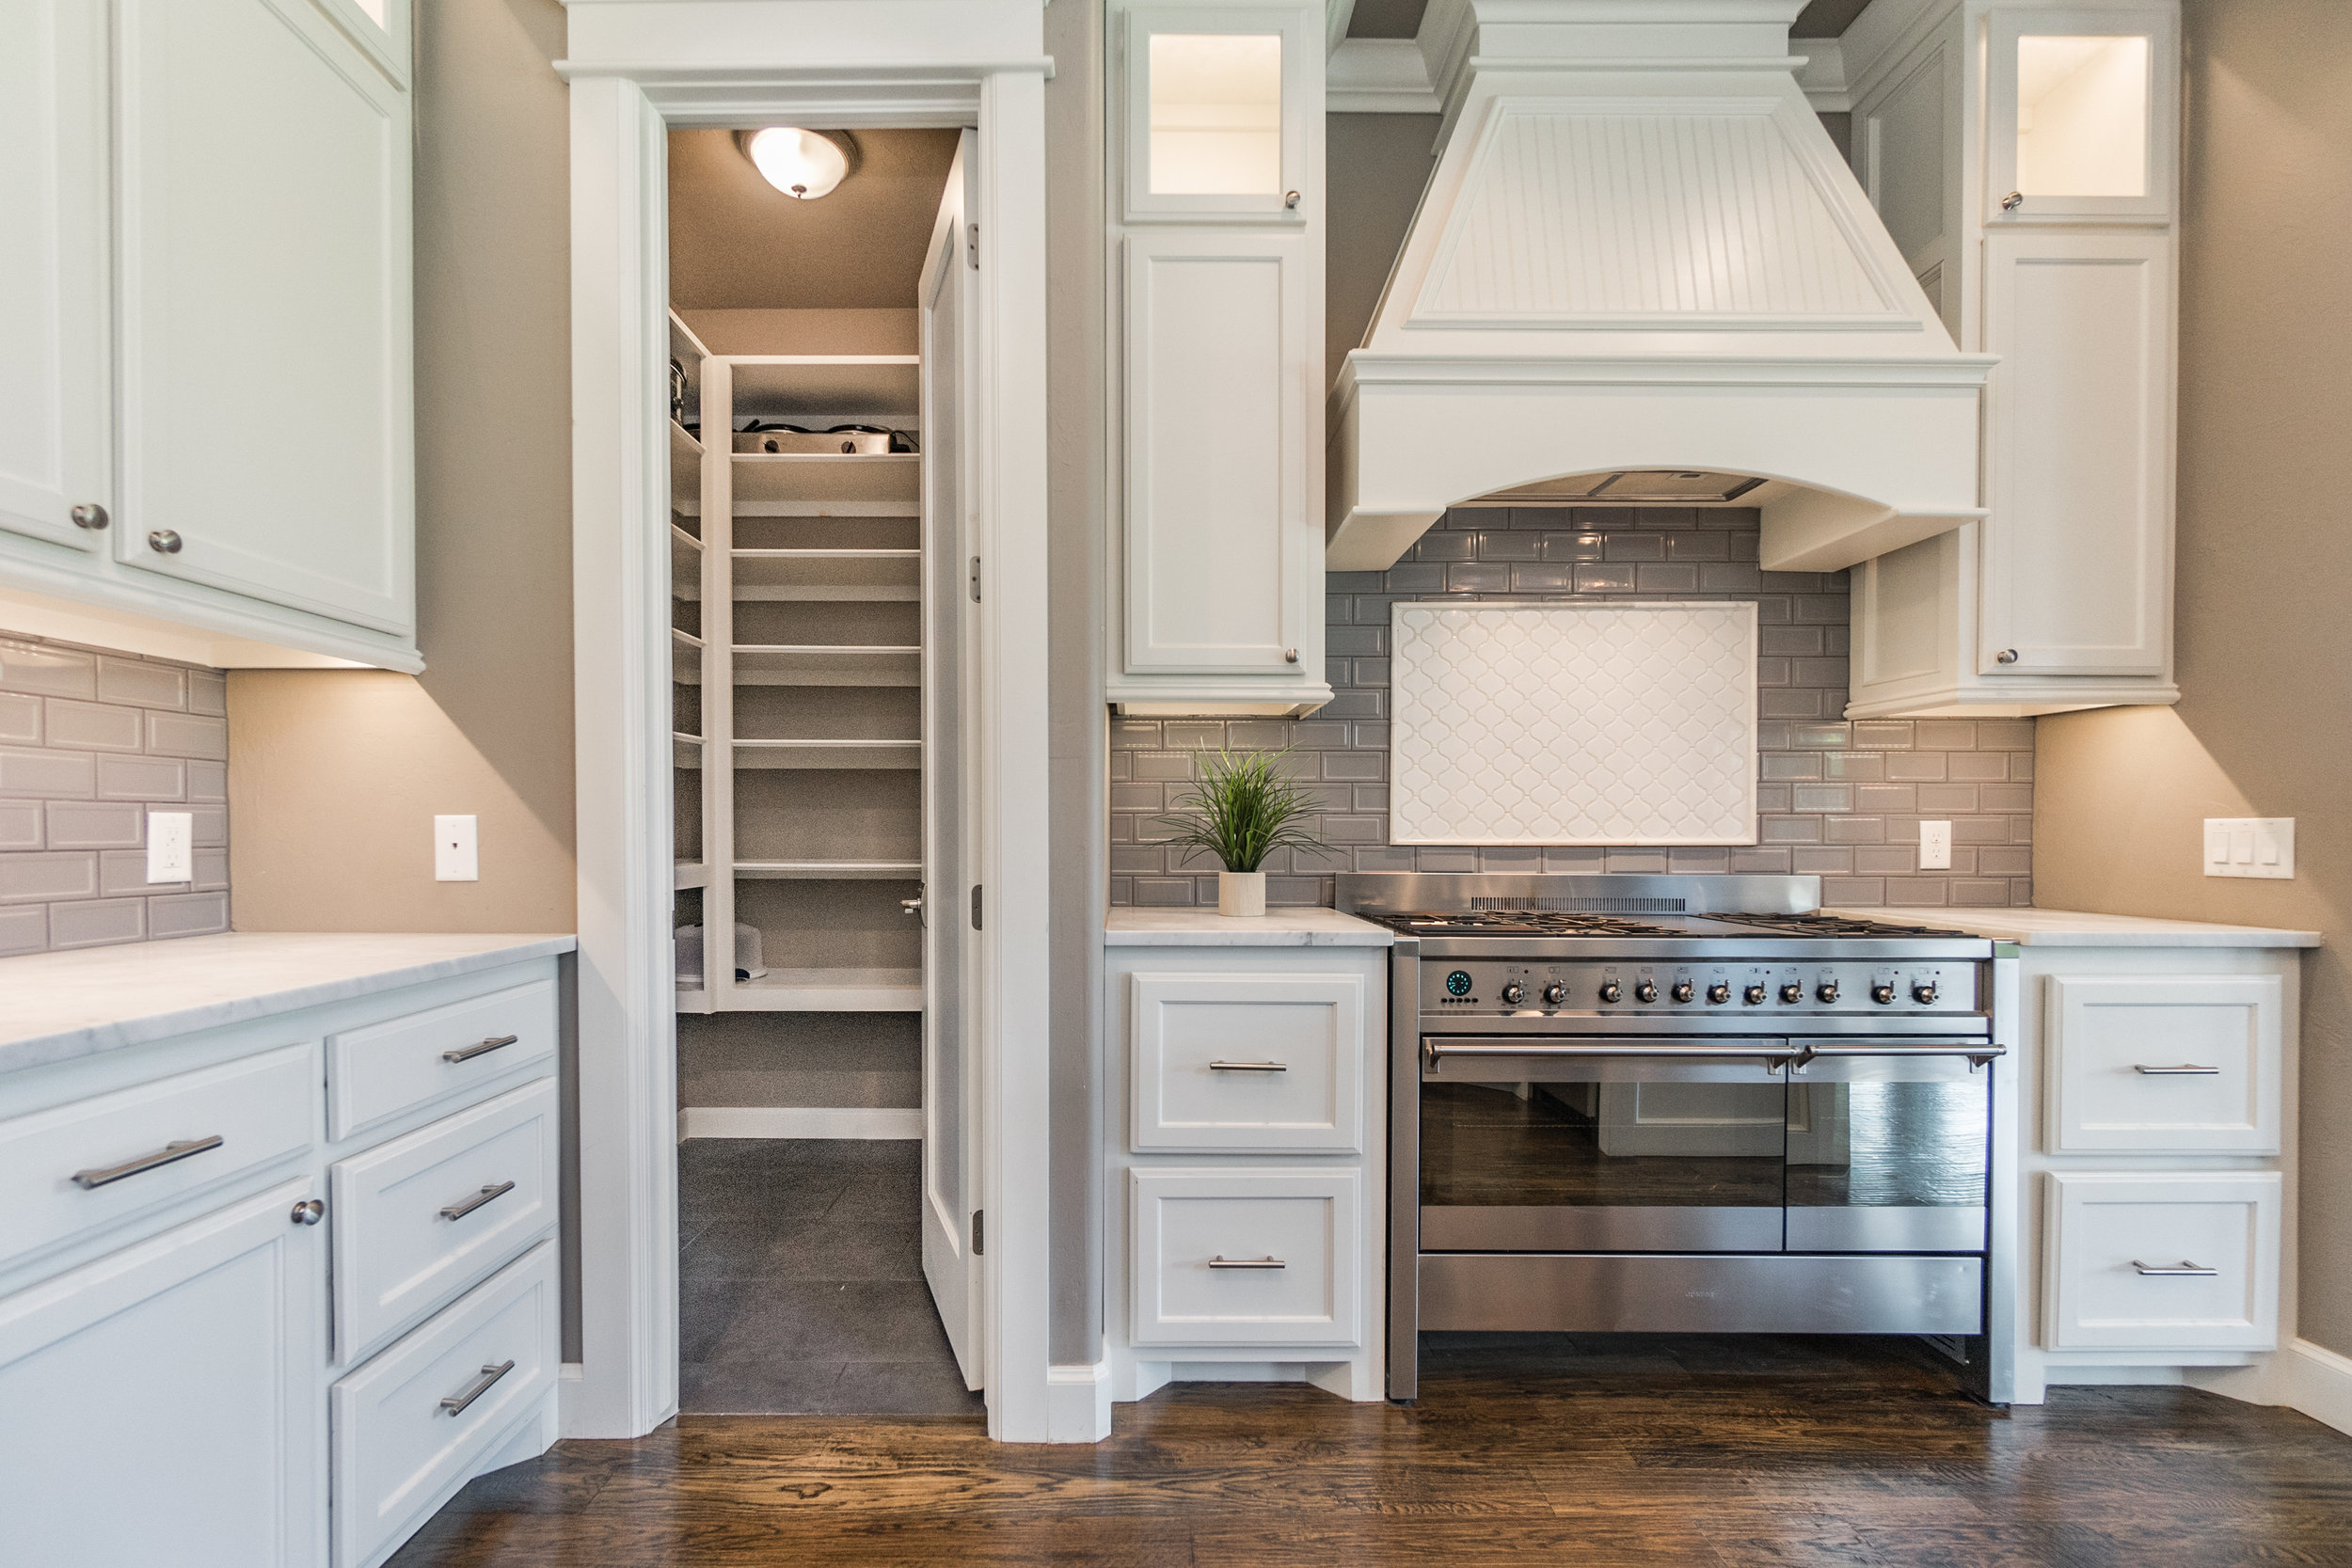 cook's dream gas stove and pantry view